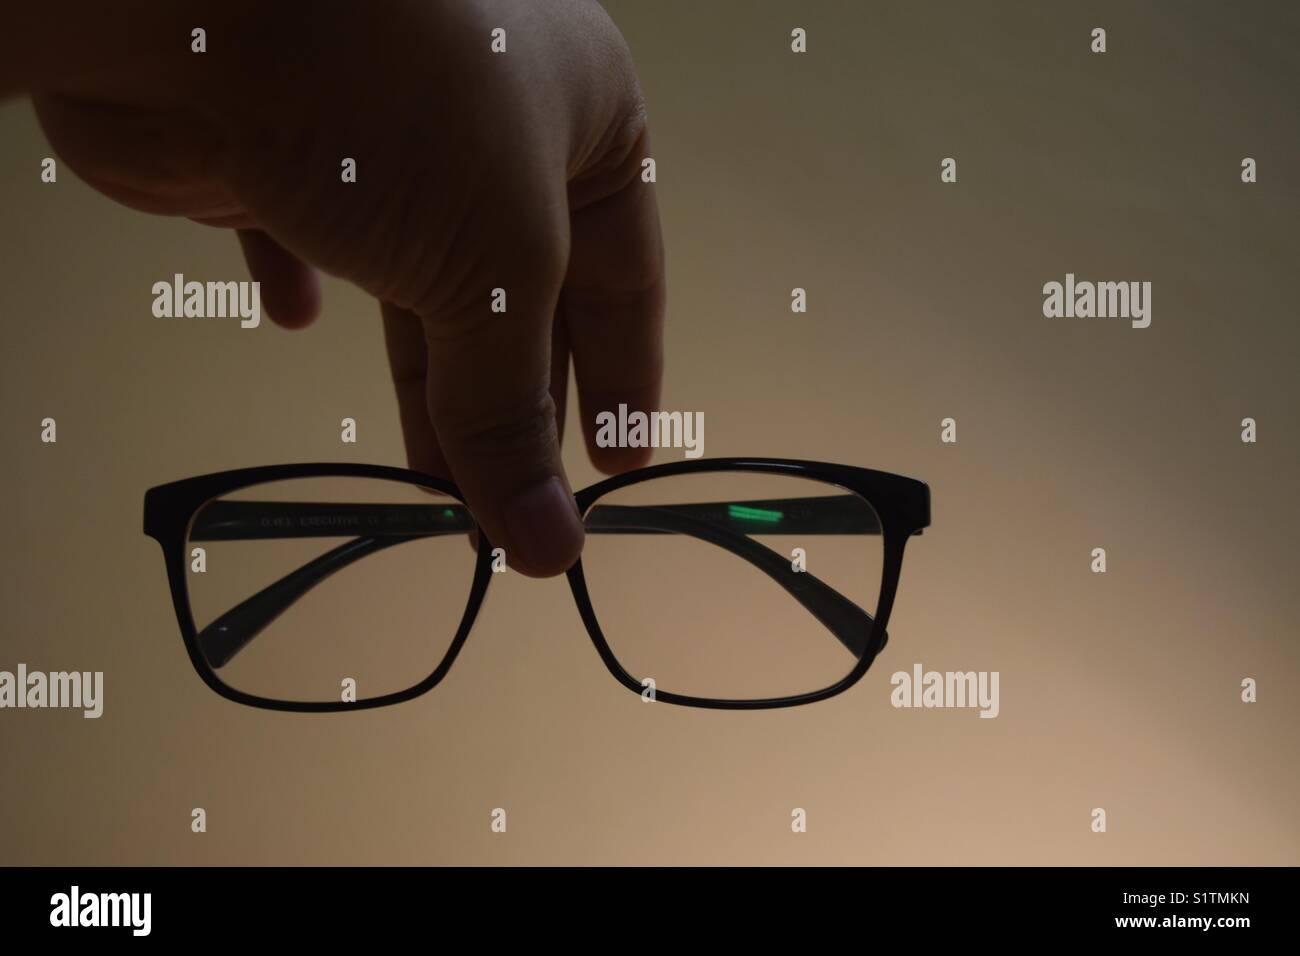 Spectacle - Stock Image